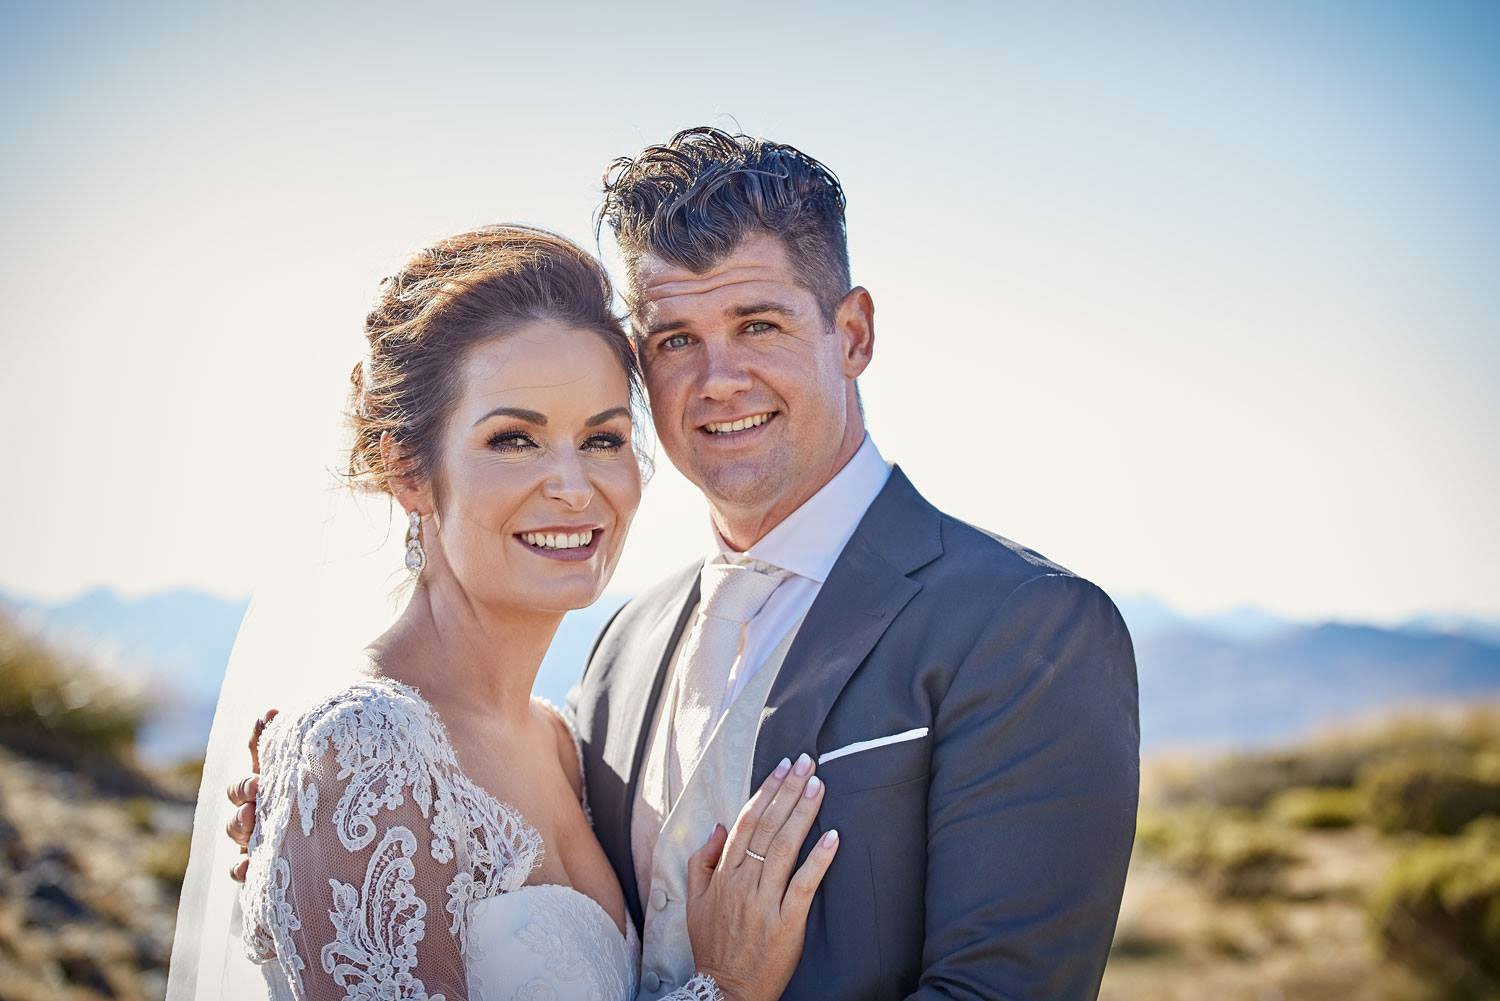 Abbie & Joh's Stoneridge Estate Wedding